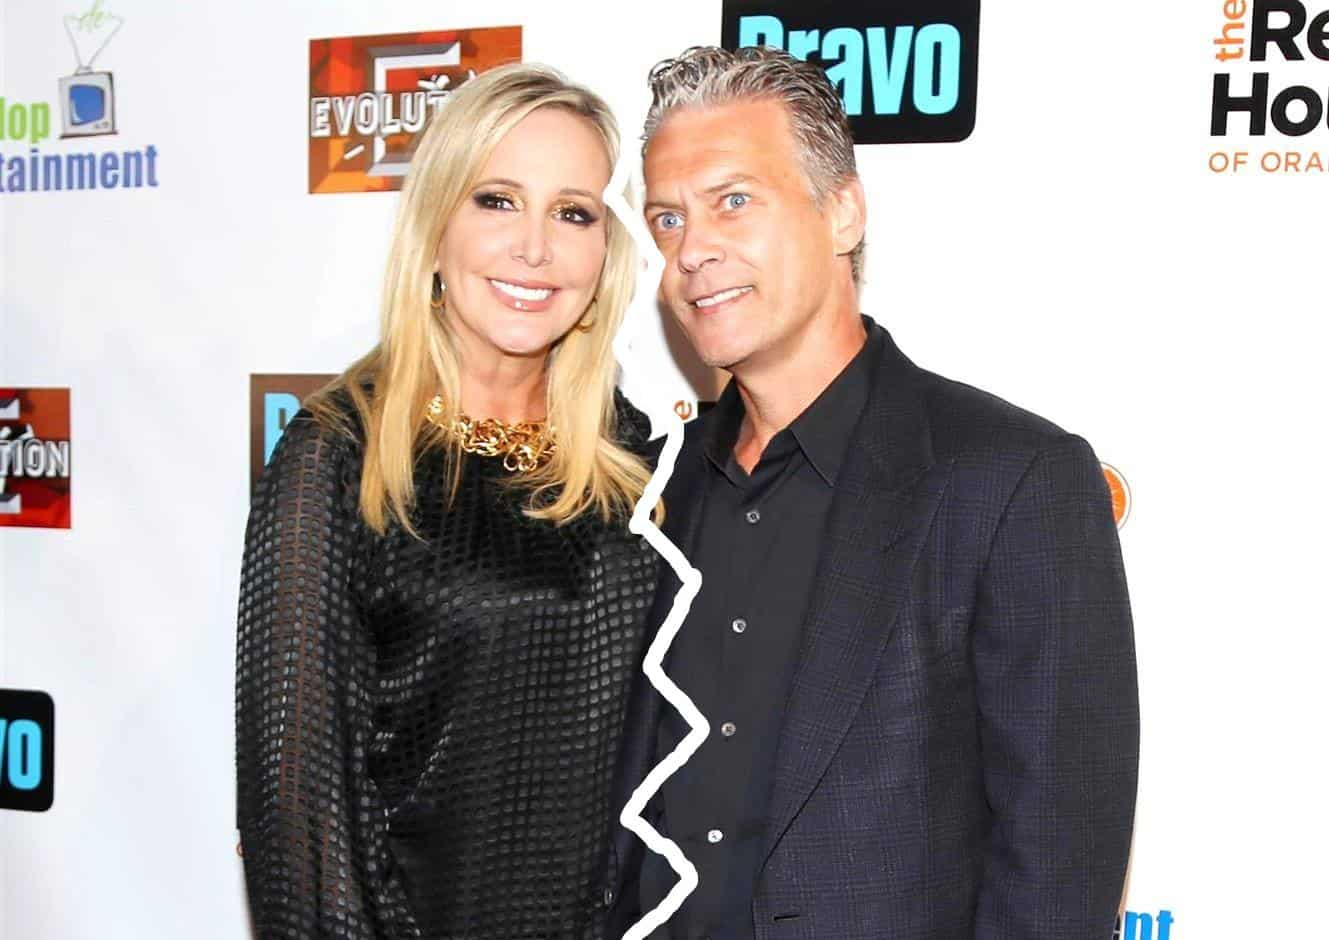 RHOC's Shannon Beador Slams Ex David Beador In Court